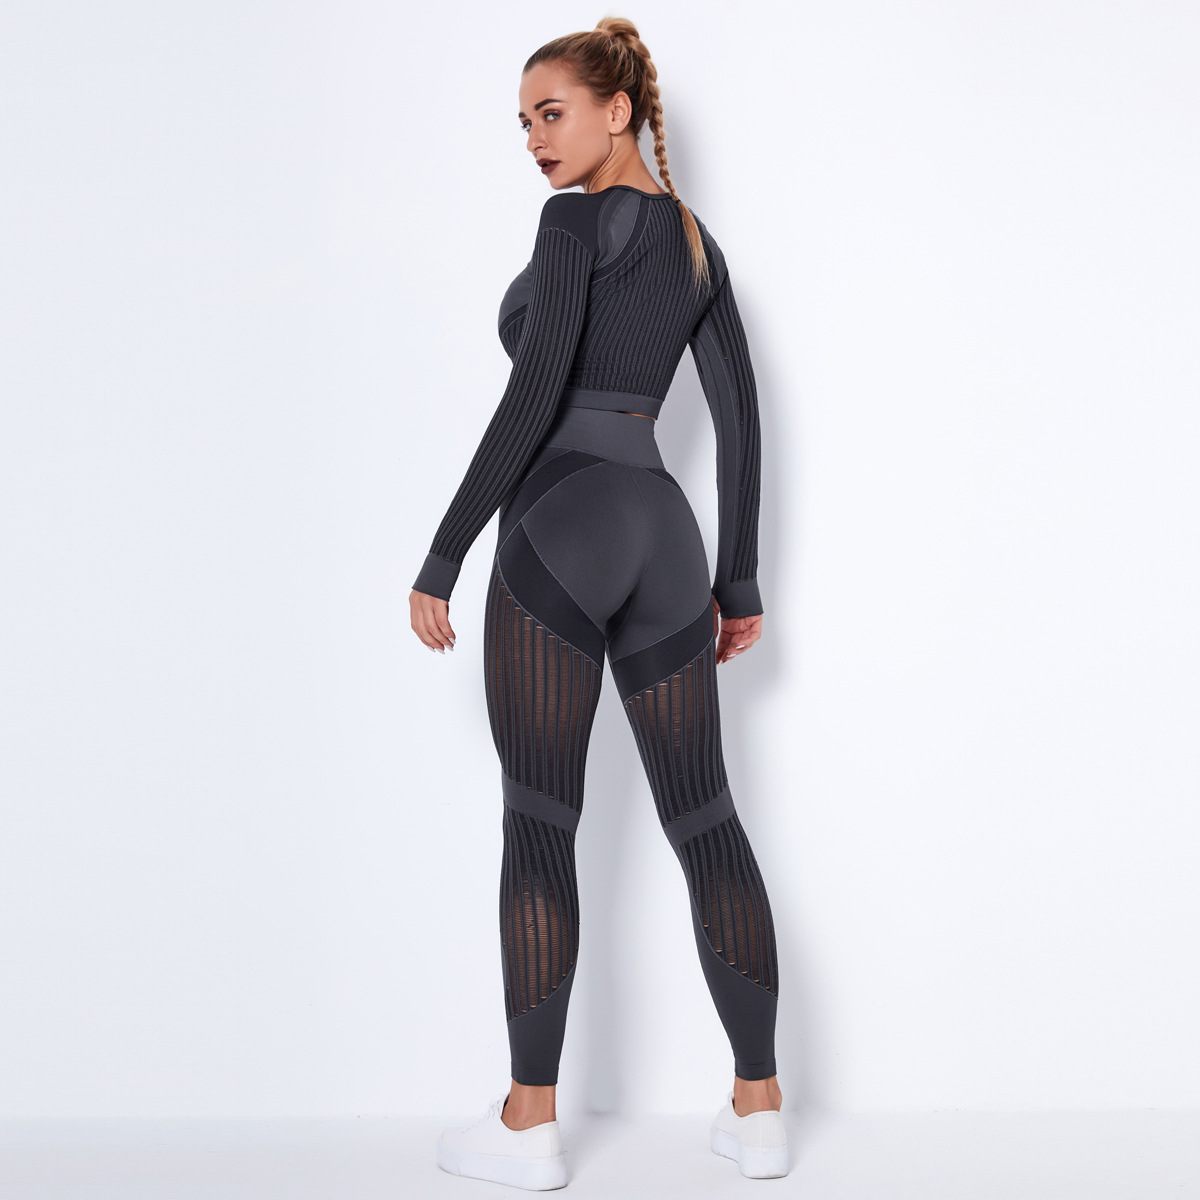 seamless knitted quick-drying sports yoga suits  NSLX8983